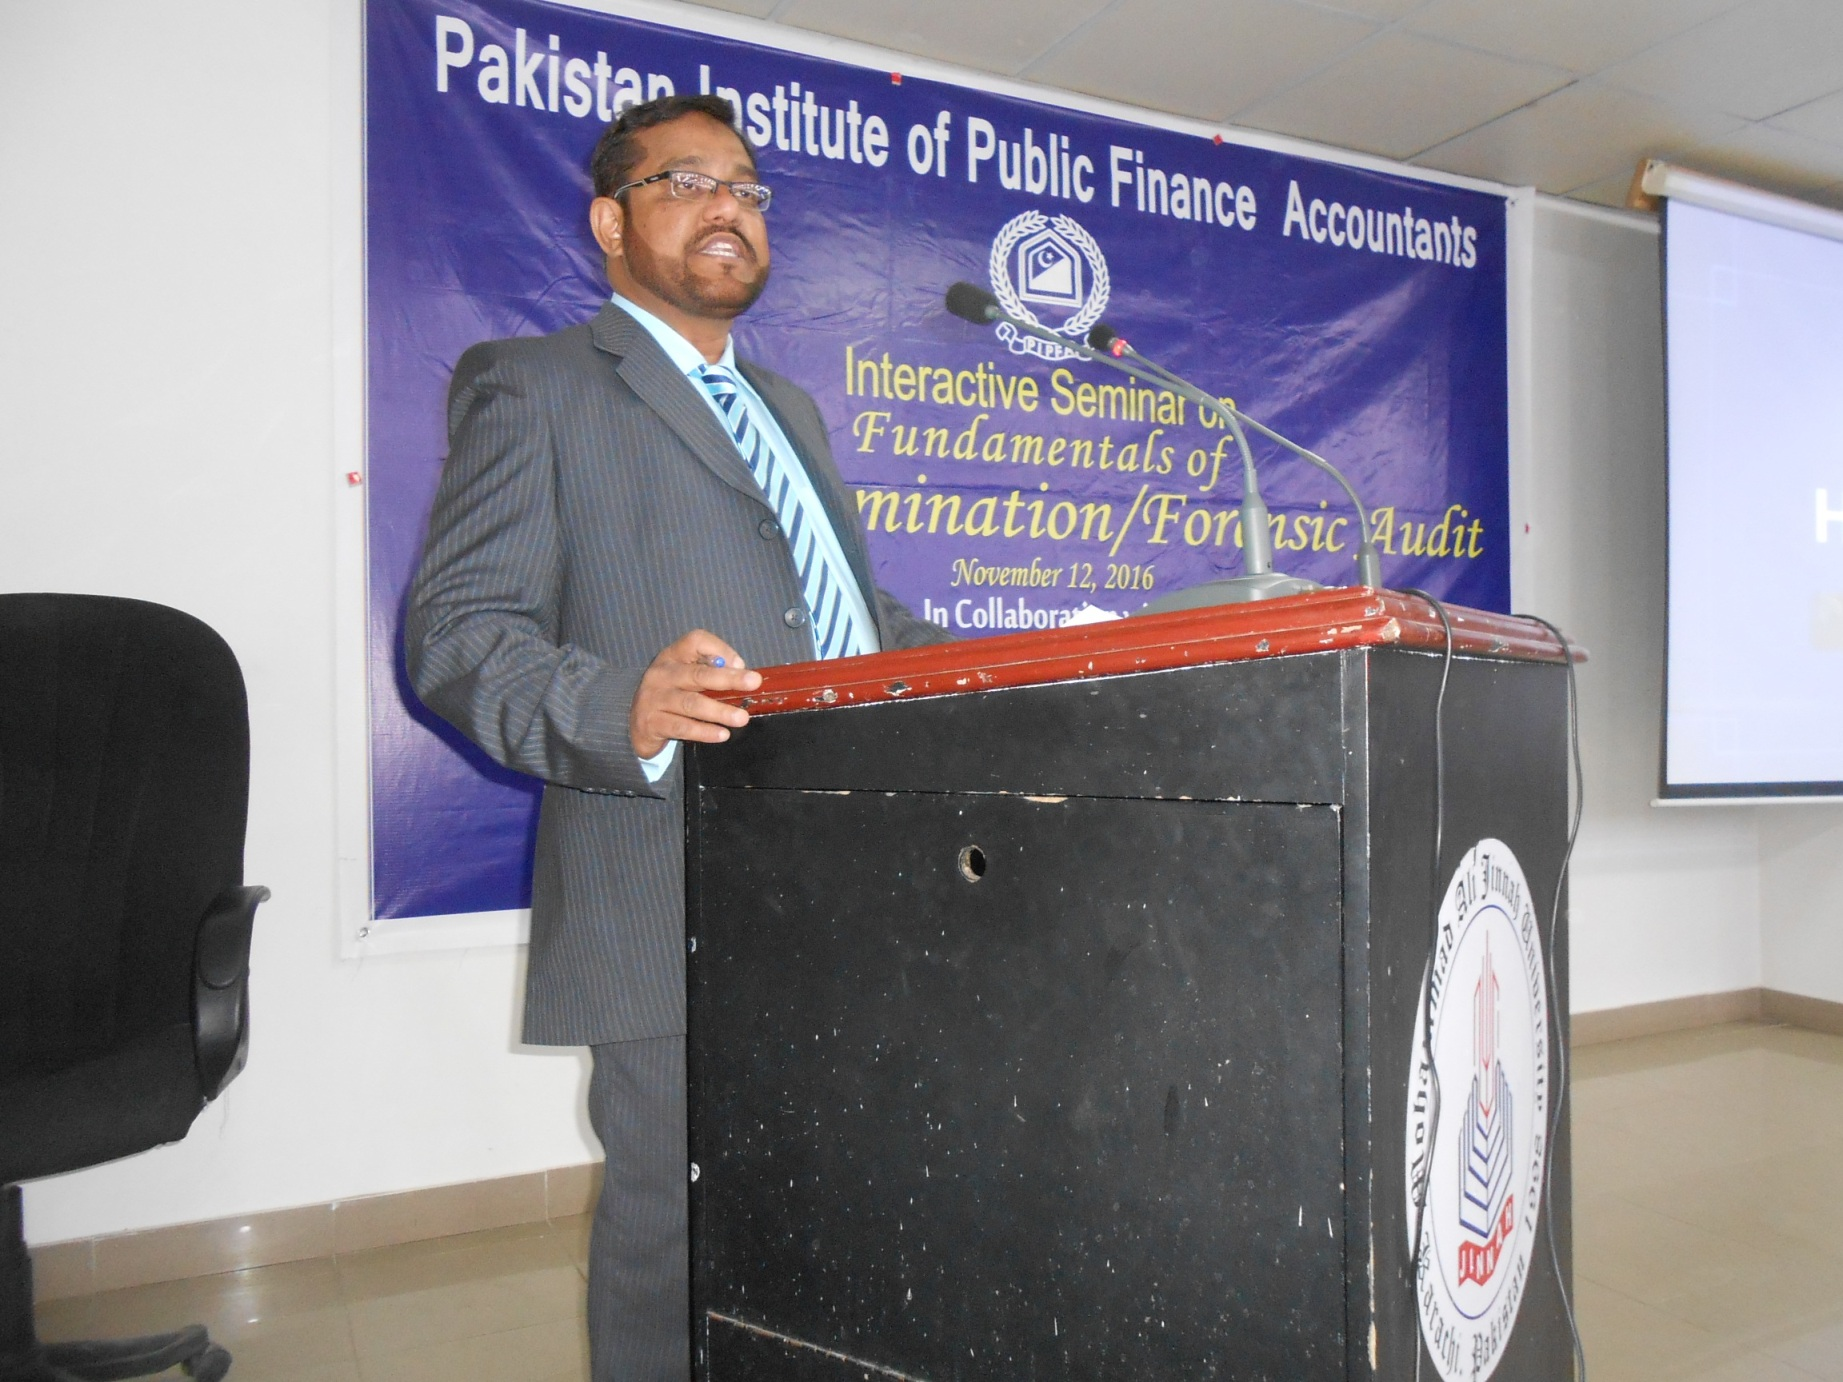 Mr. Tariq Hussain, Session Chairman sharing his experiences with audience